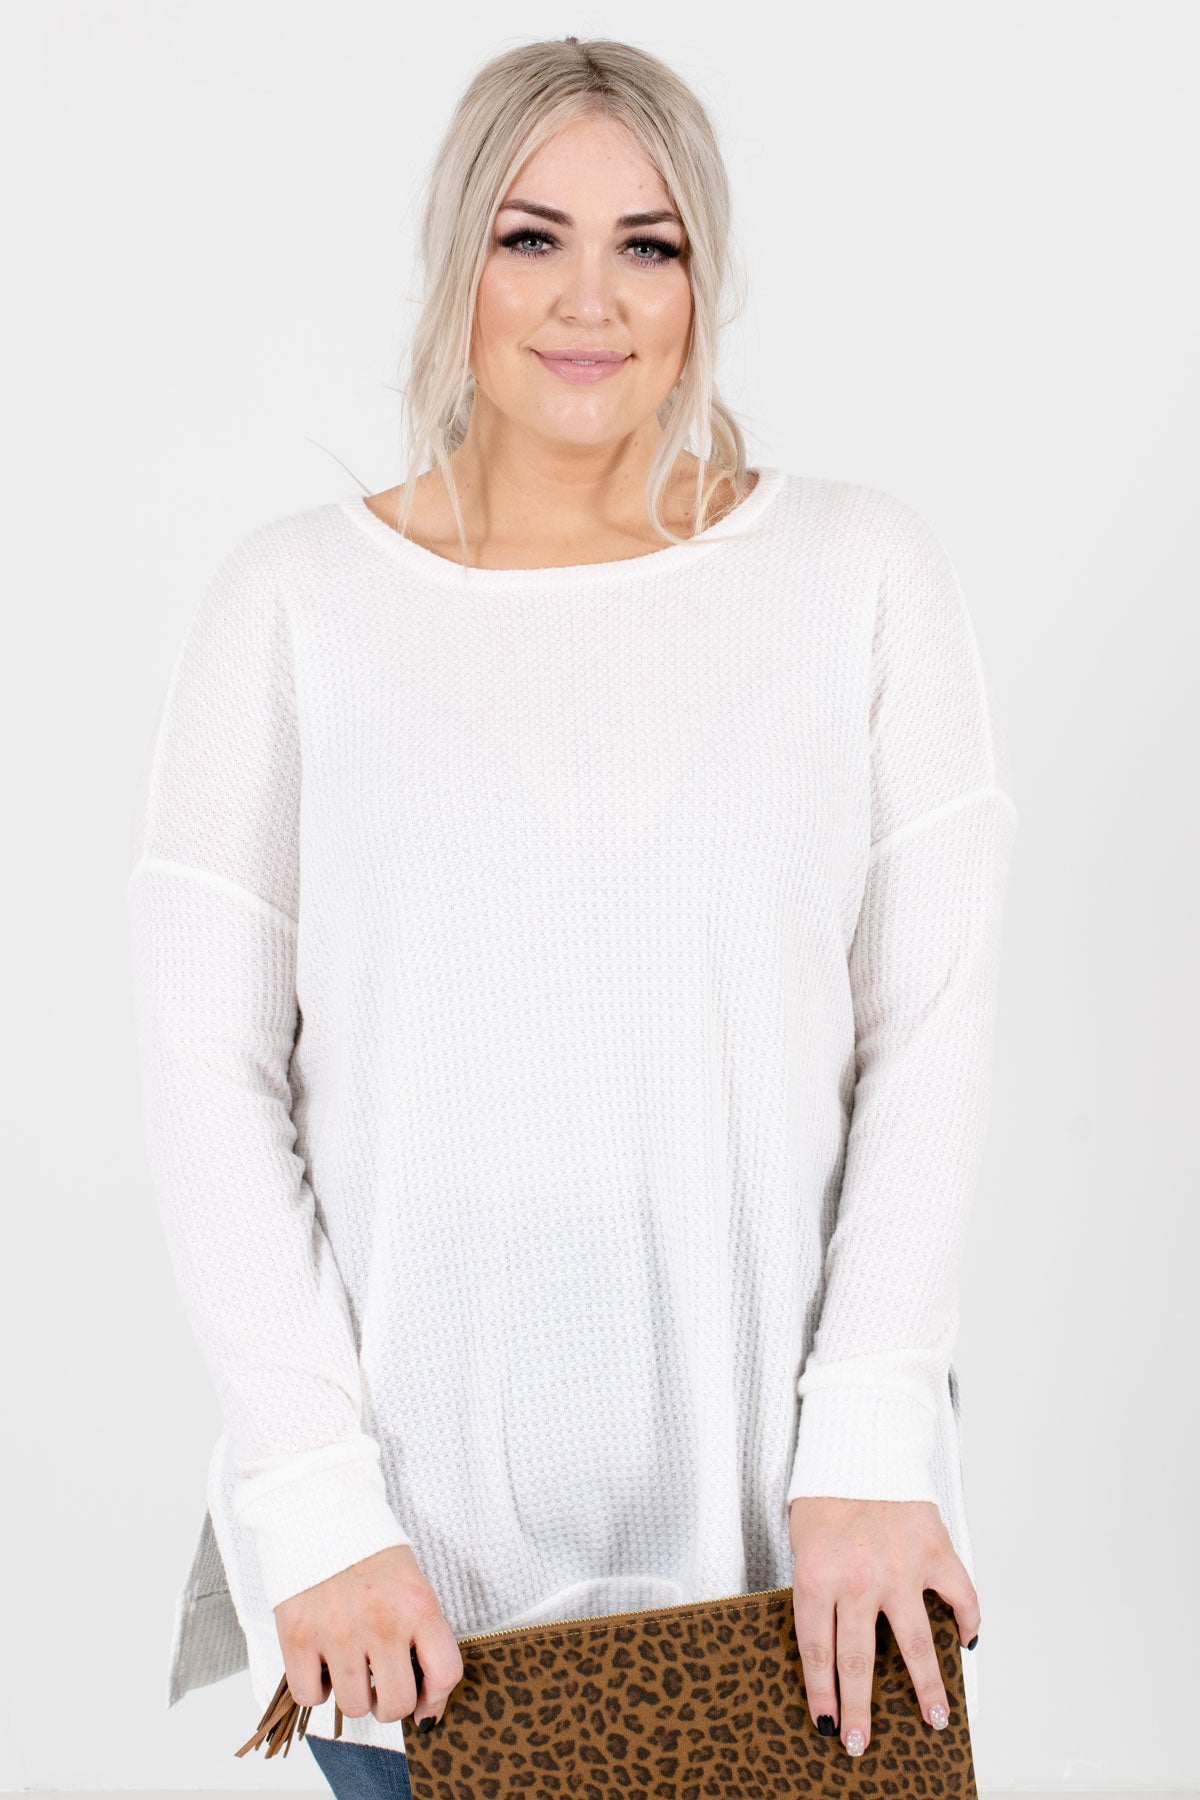 White High-Quality Waffle Knit Material Boutique Tops for Women